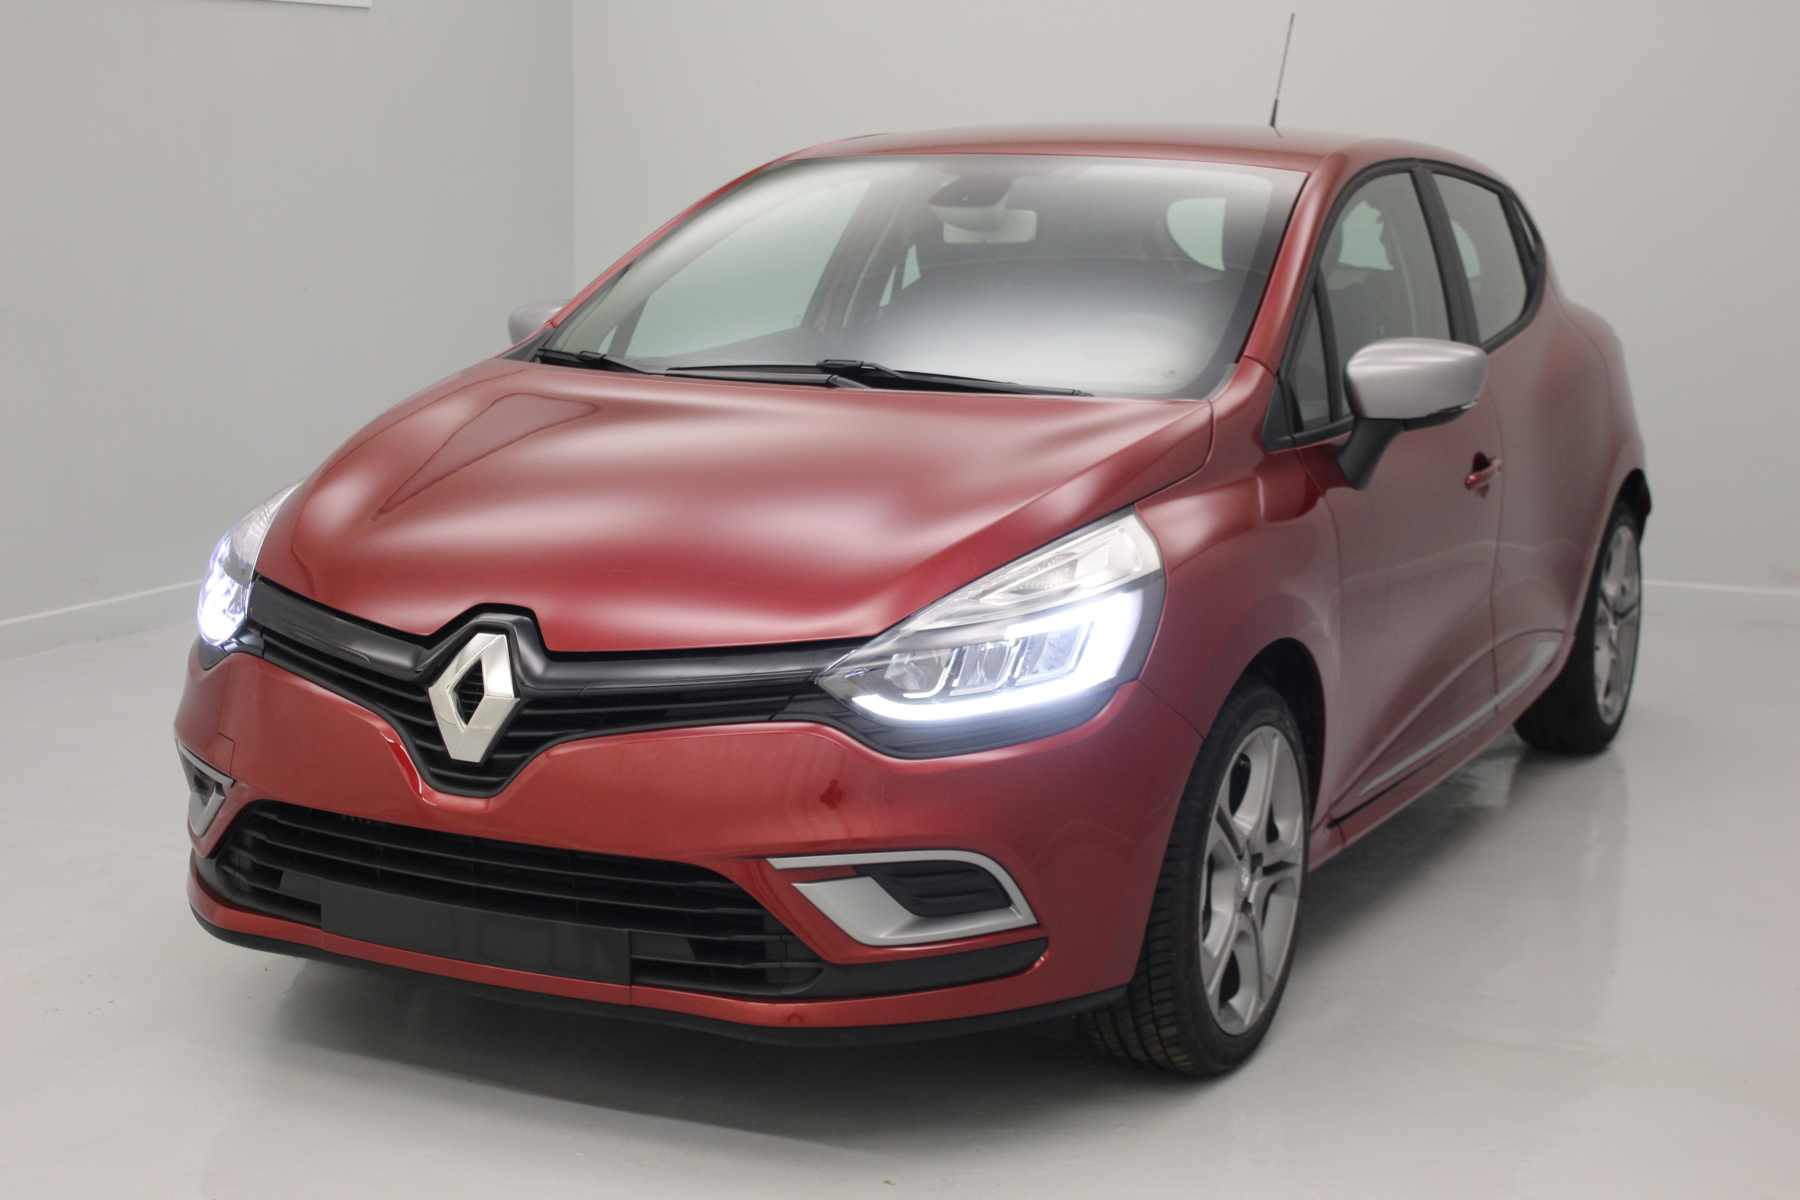 RENAULT Clio IV Nouvelle TCe 90 Energy Intens + Full Pack GT-Line - Rouge Intense avec options